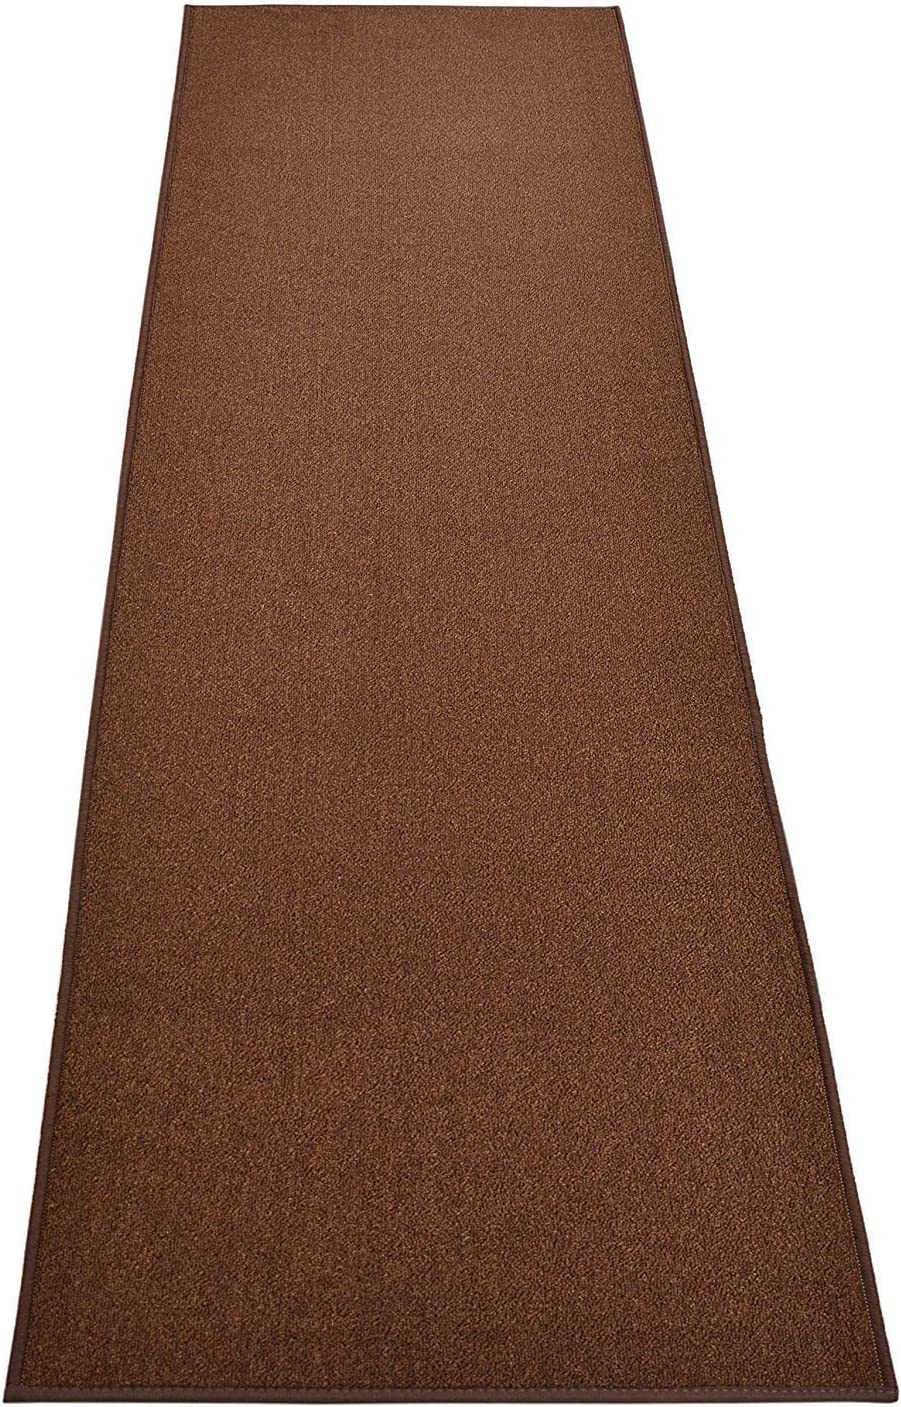 Custom Size Solid Brown Roll Runner 26 Direct sale of manufacturer x in Your Cho Many popular brands Wide Length